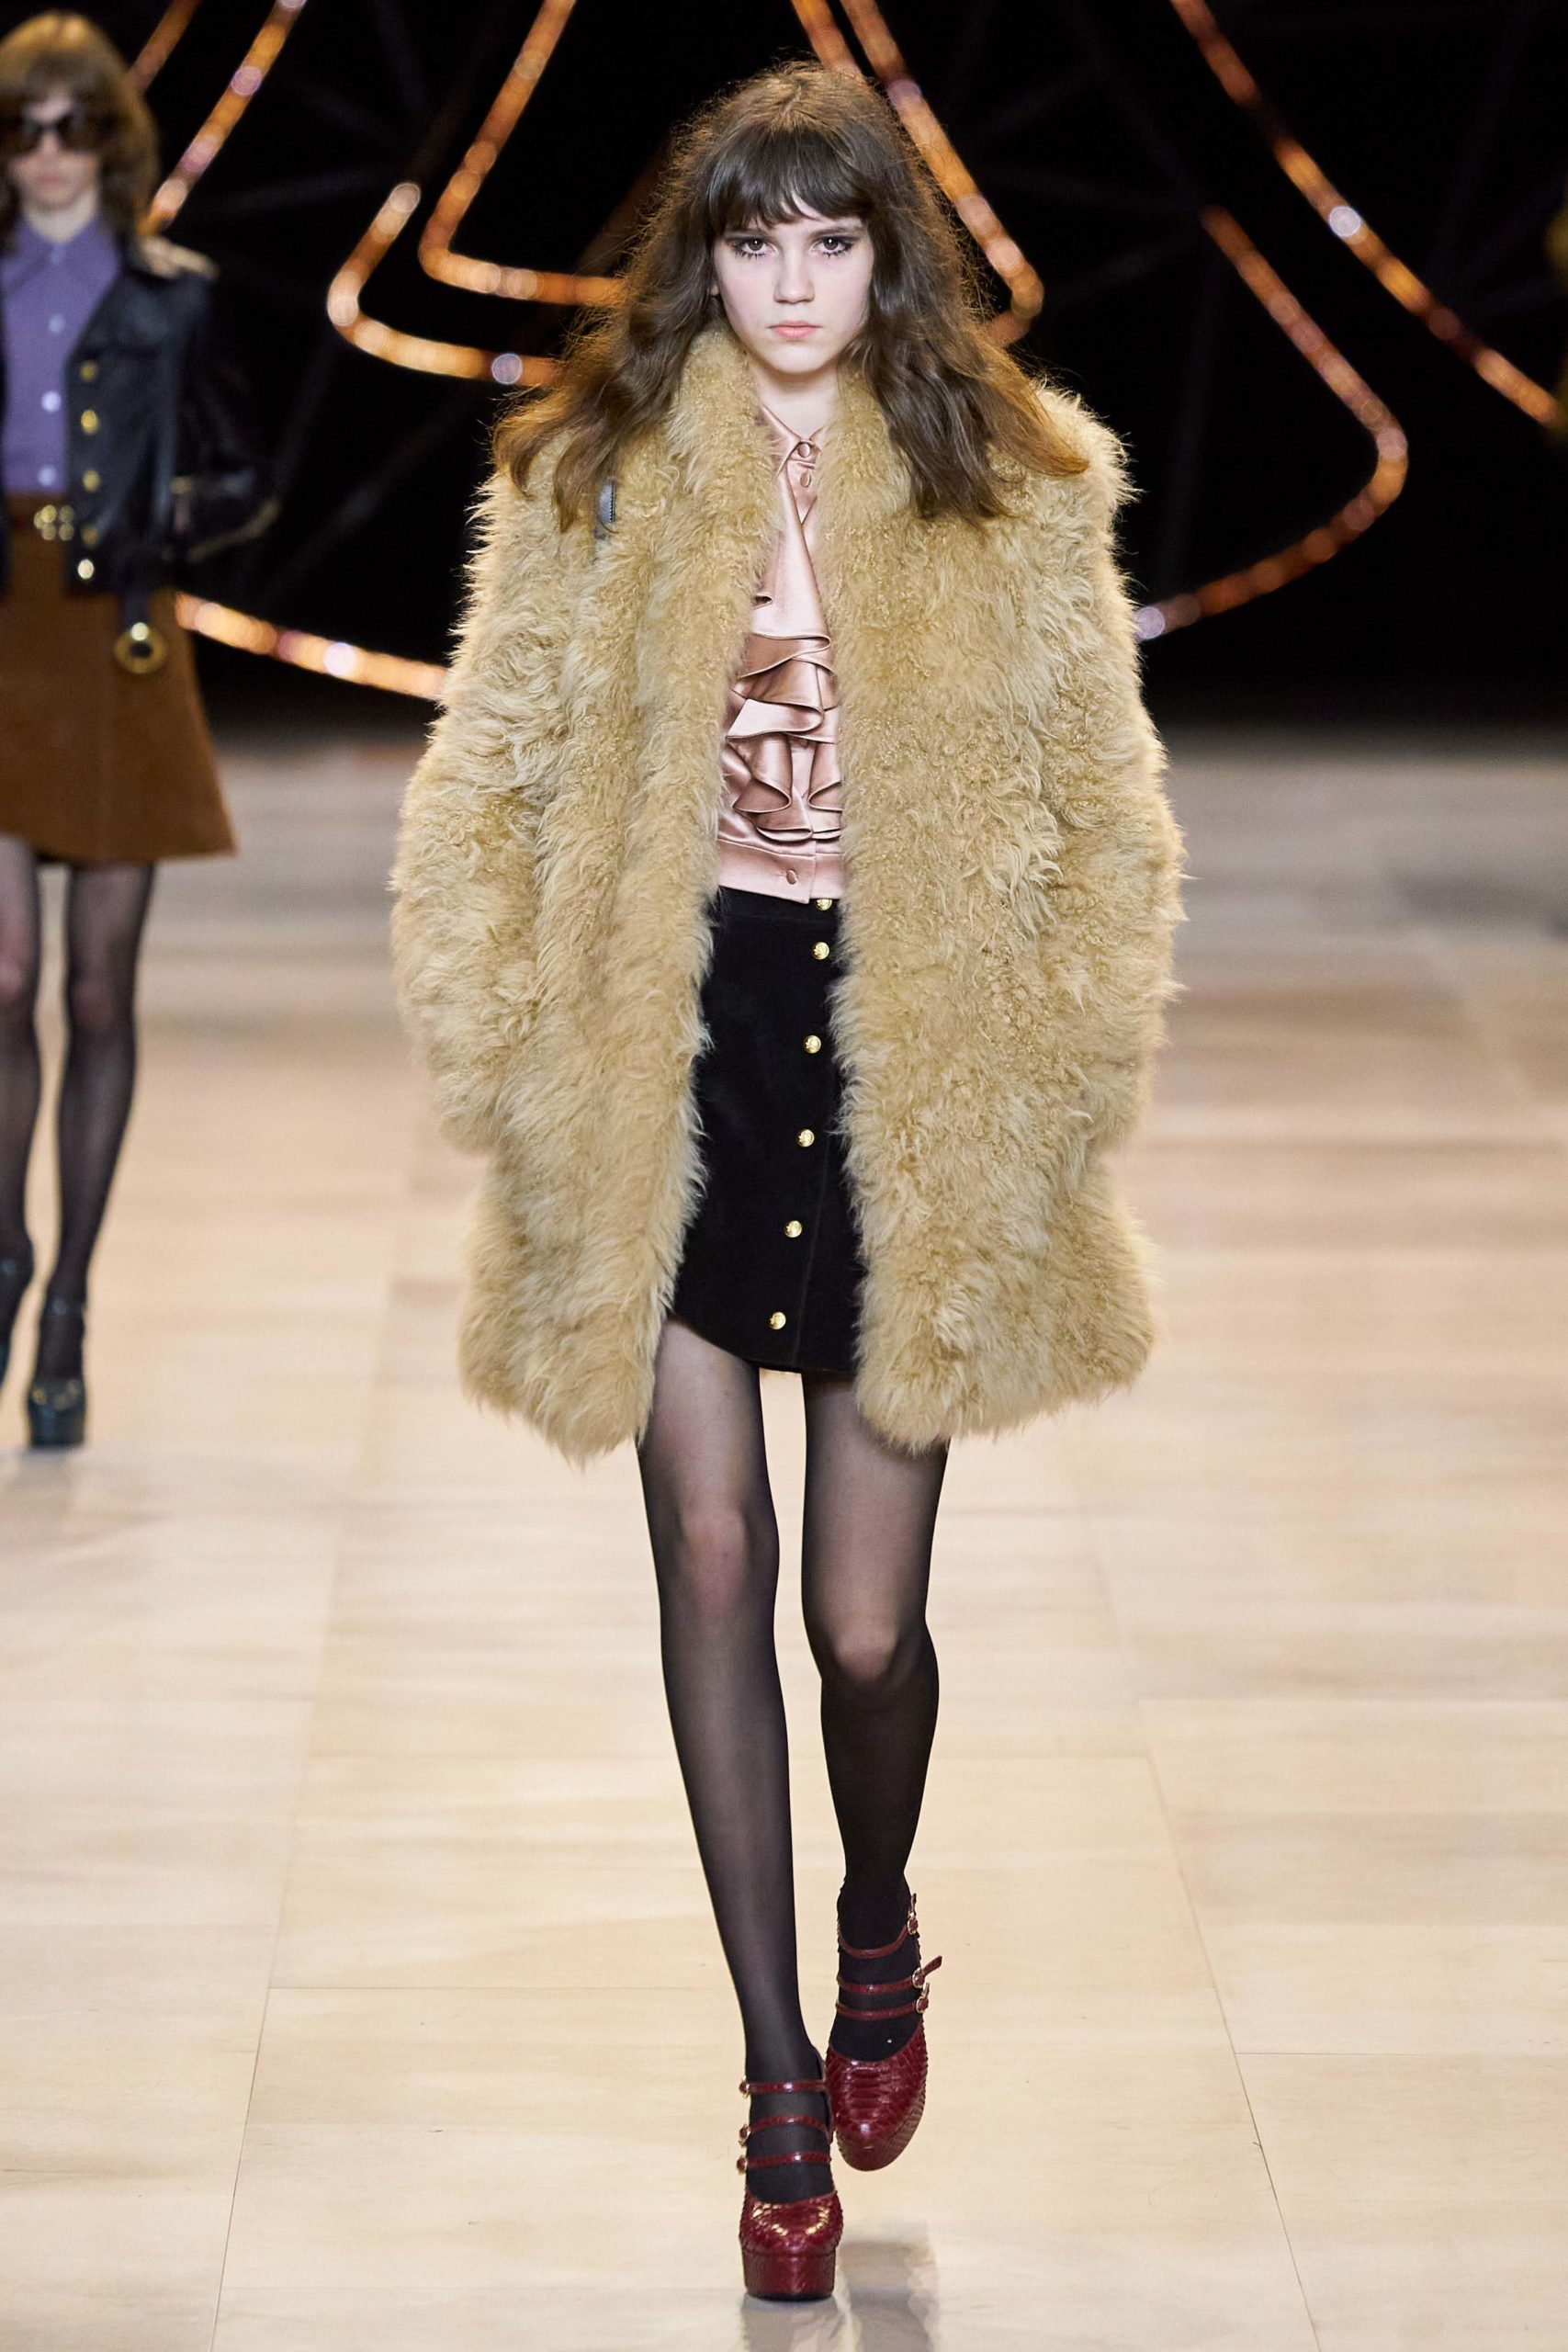 Celine Fall Winter 2020 trends runway coverage Ready To Wear Vogue shaggy